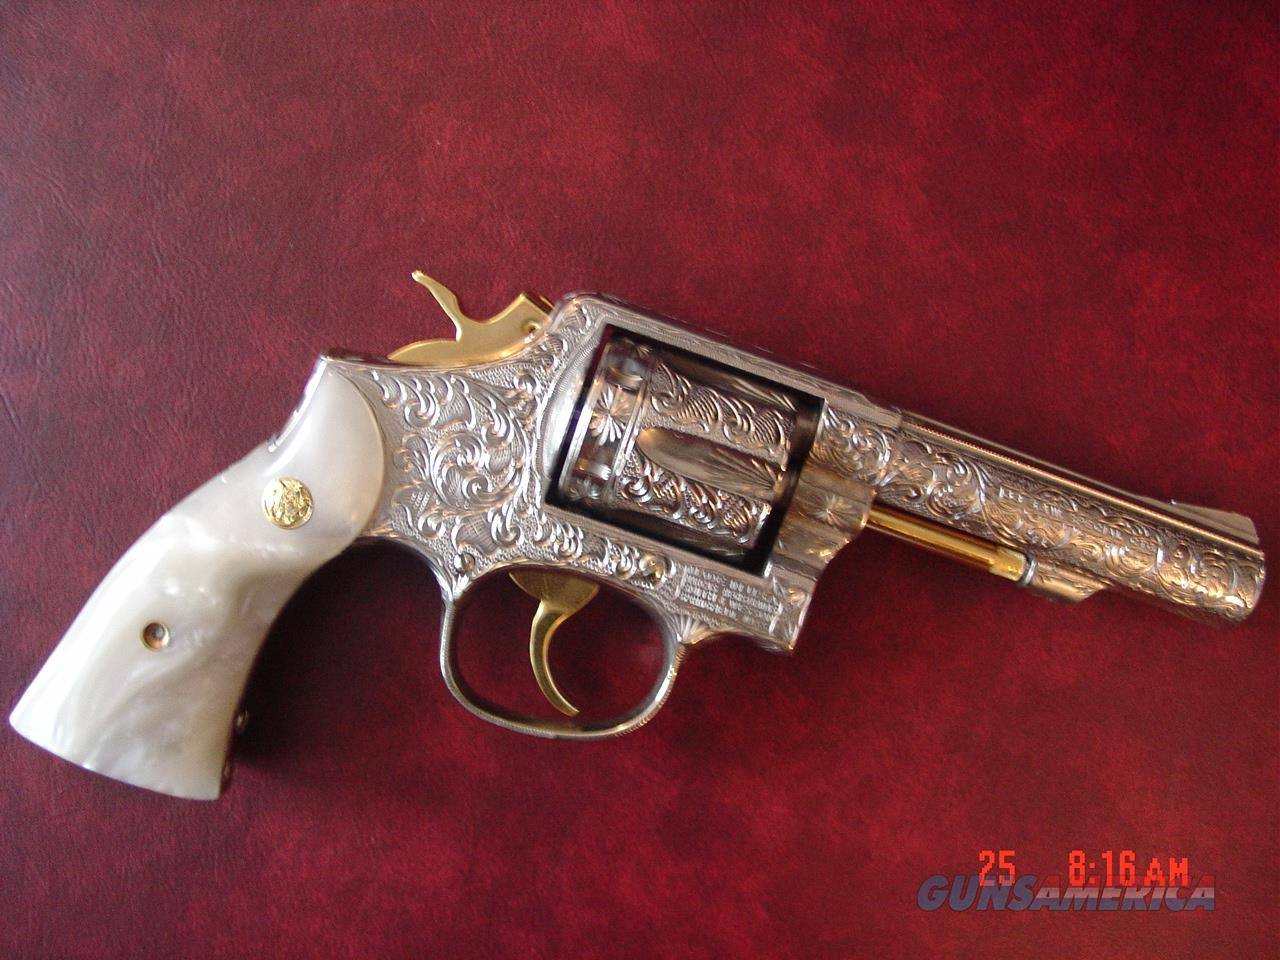 "Smith & Wesson Model 10,4"",38spl.Fully engraved & refinished in bright nickel with 24k gold accents,& Pearlite grips,from Flannery Engraving. much nicer in person ! awesome .  Guns > Pistols > Smith & Wesson Revolvers > Model 10"